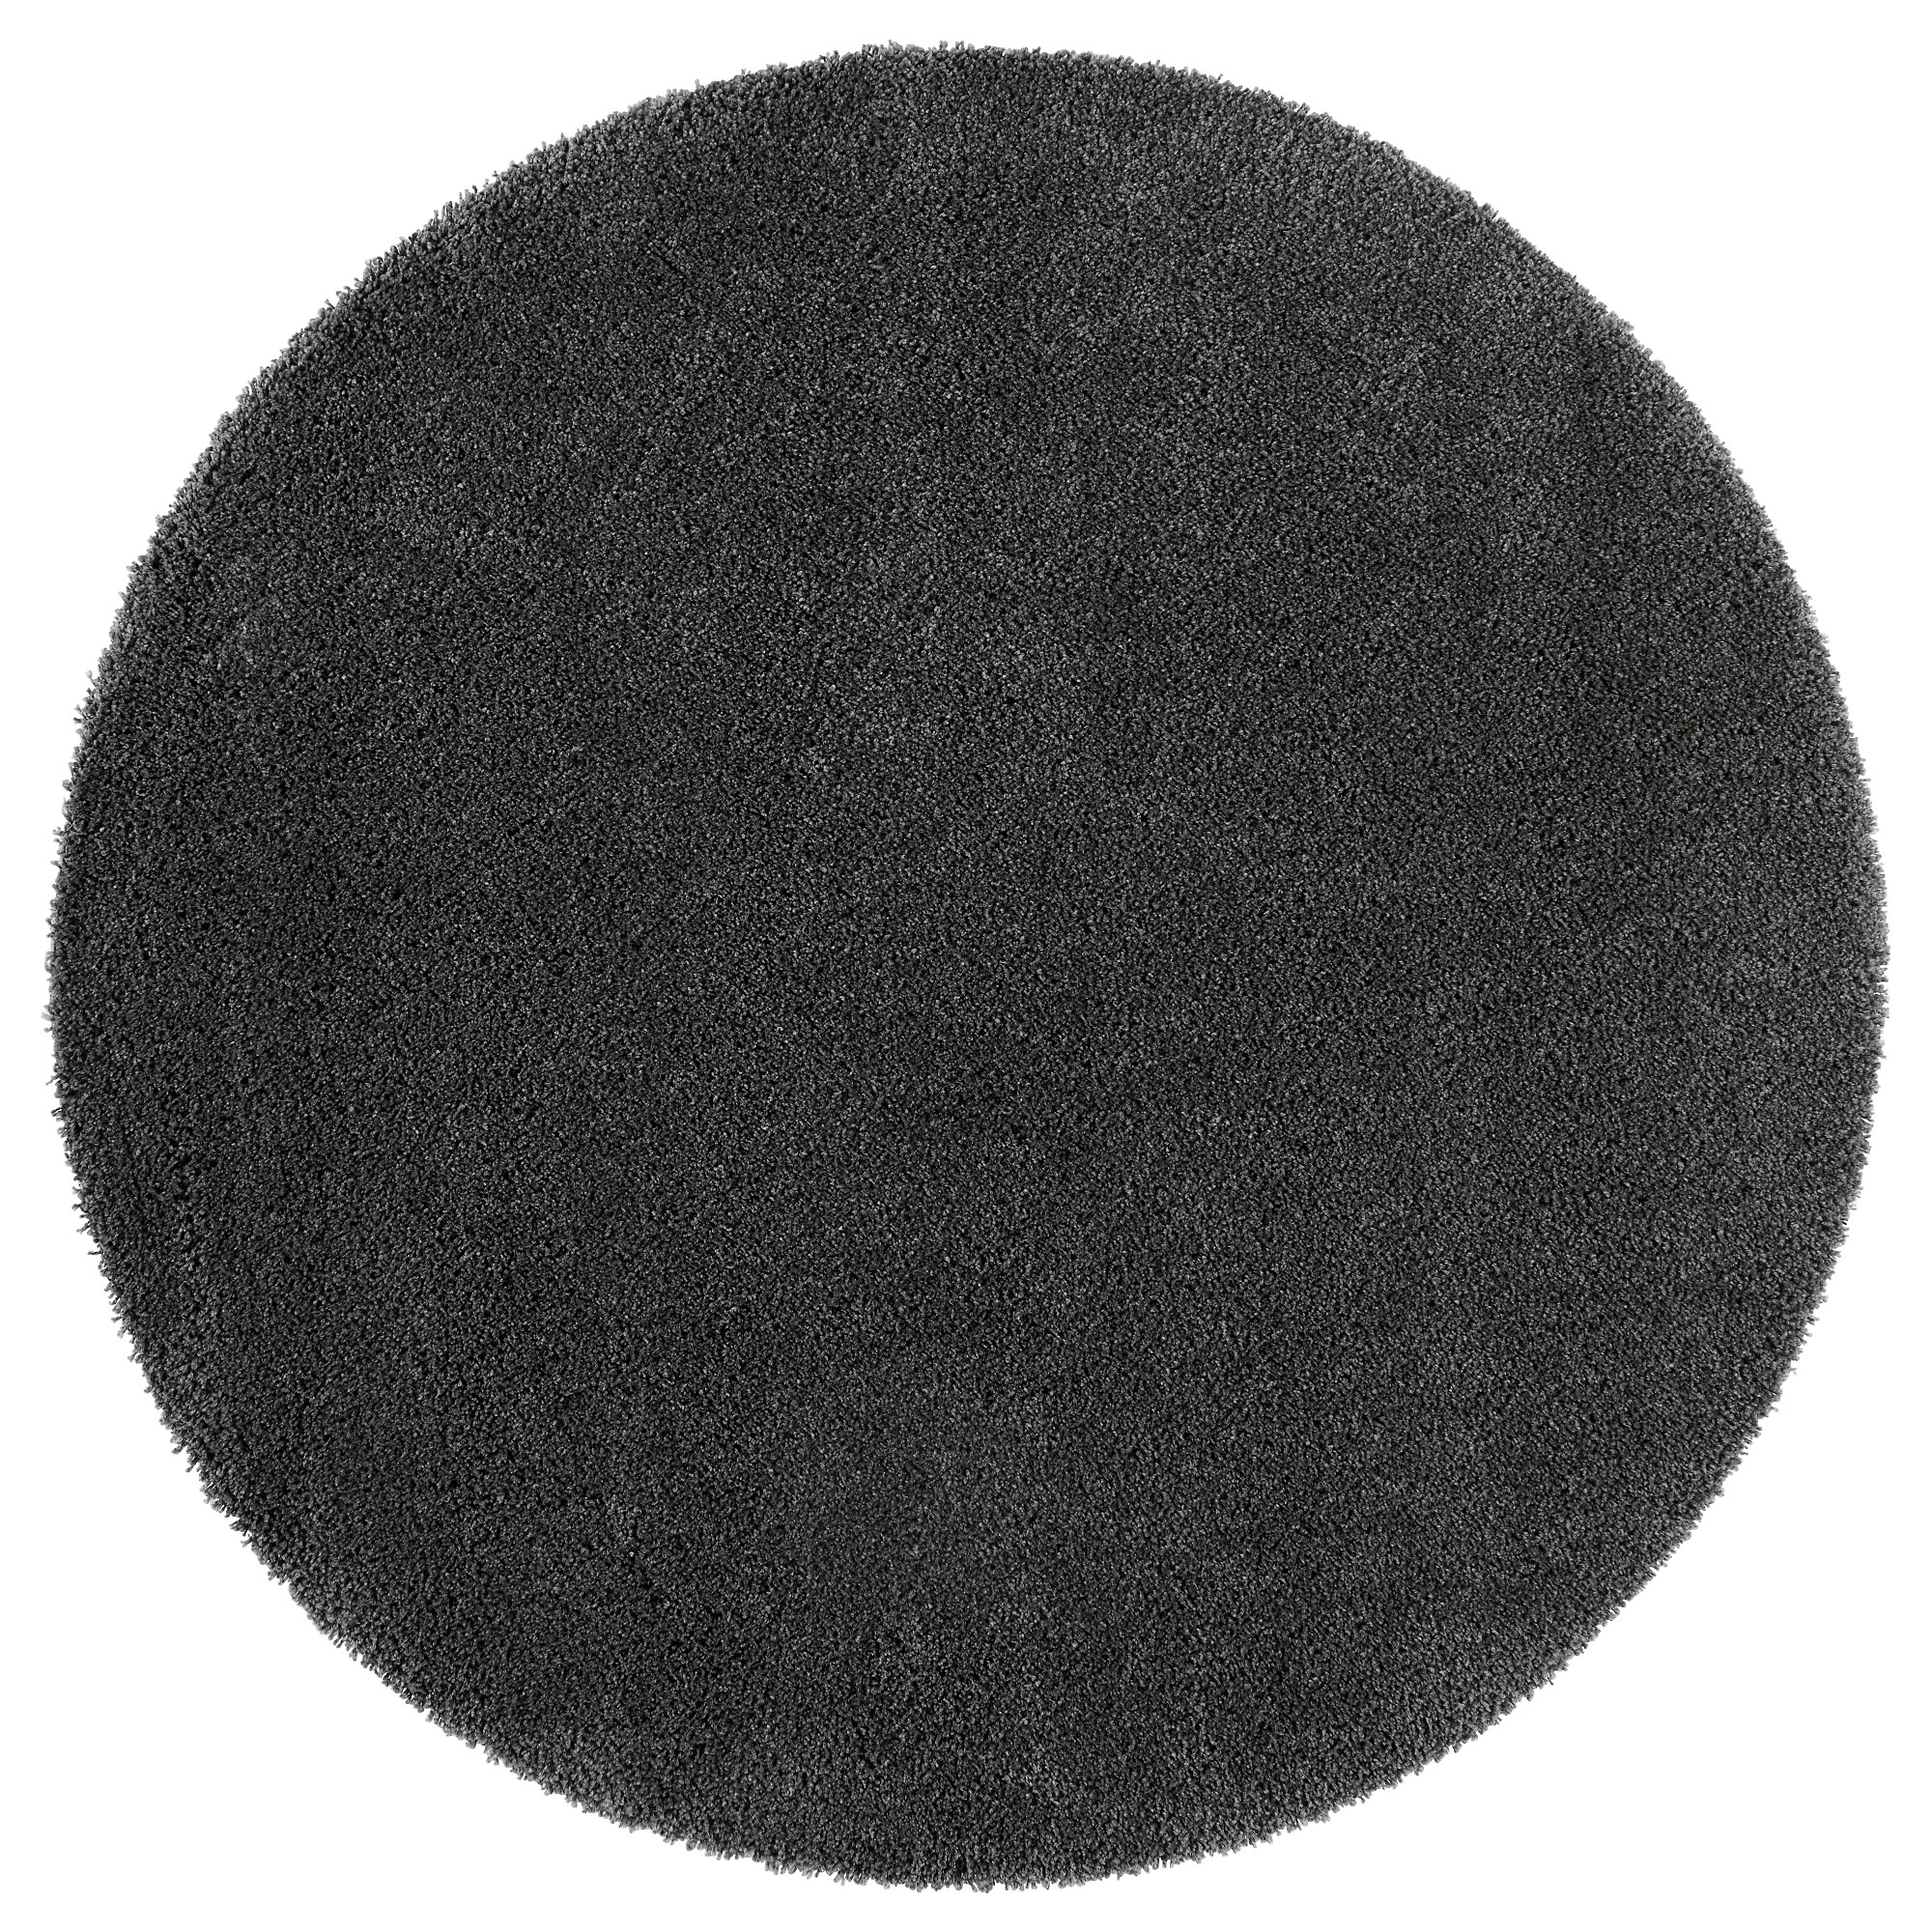 circular rug photo 3 of 5 ådum rug, high pile, dark gray diameter: 4 u0027 PWGRYBP